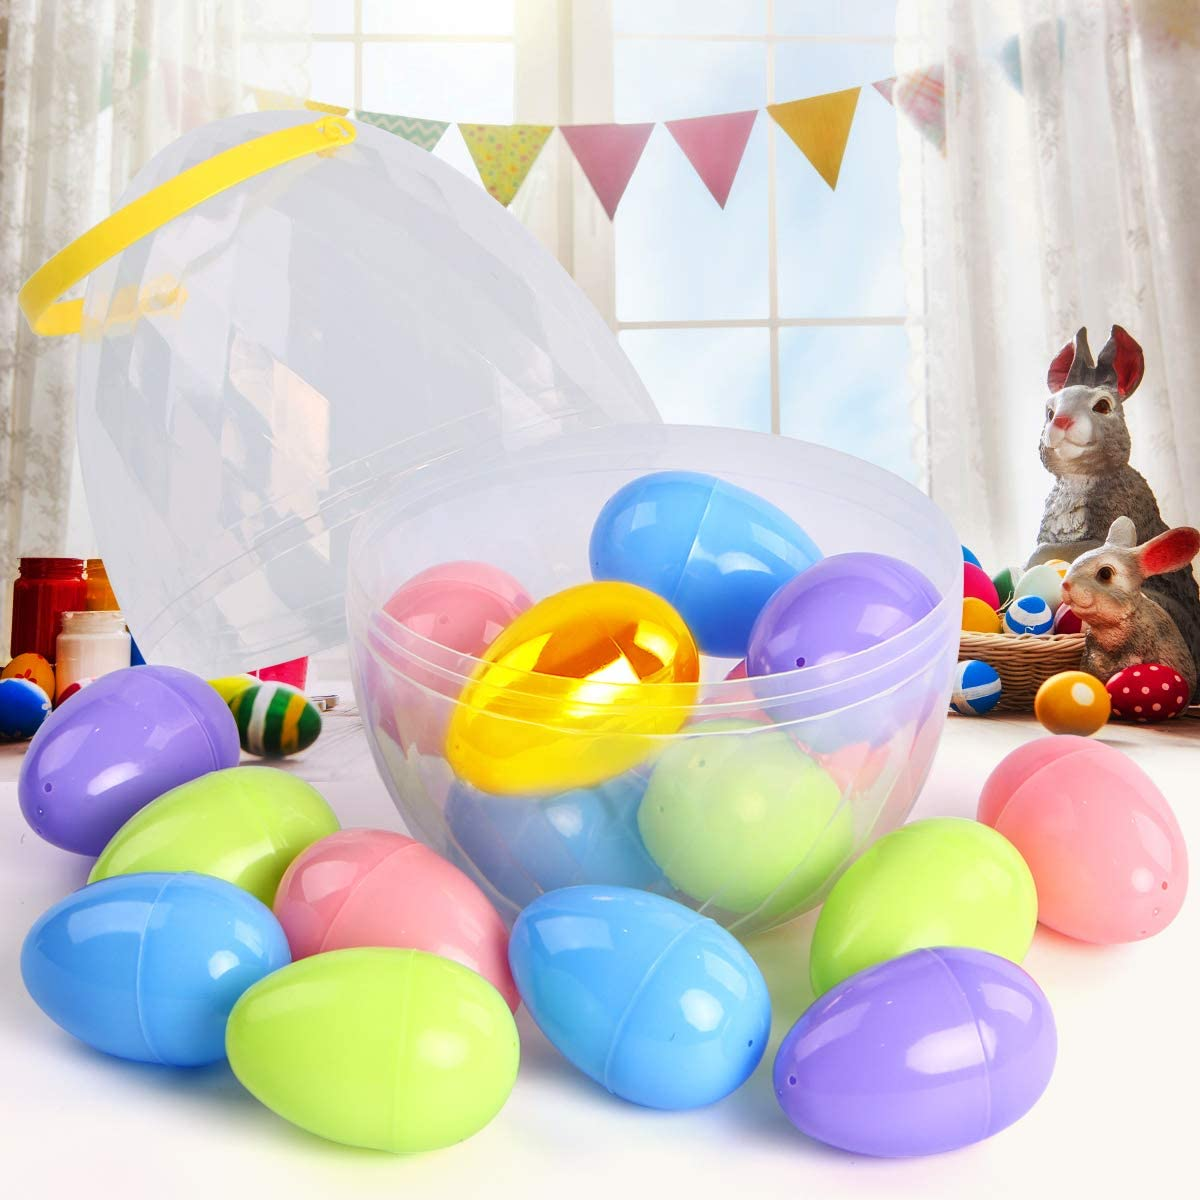 UFUNGA Jumbo Easter Eggs Container with17 PCS 3.14 Plastic Eggs Perfect Fillable Easter Egg Basket for Easter Egg Hunt and Easter Prizes